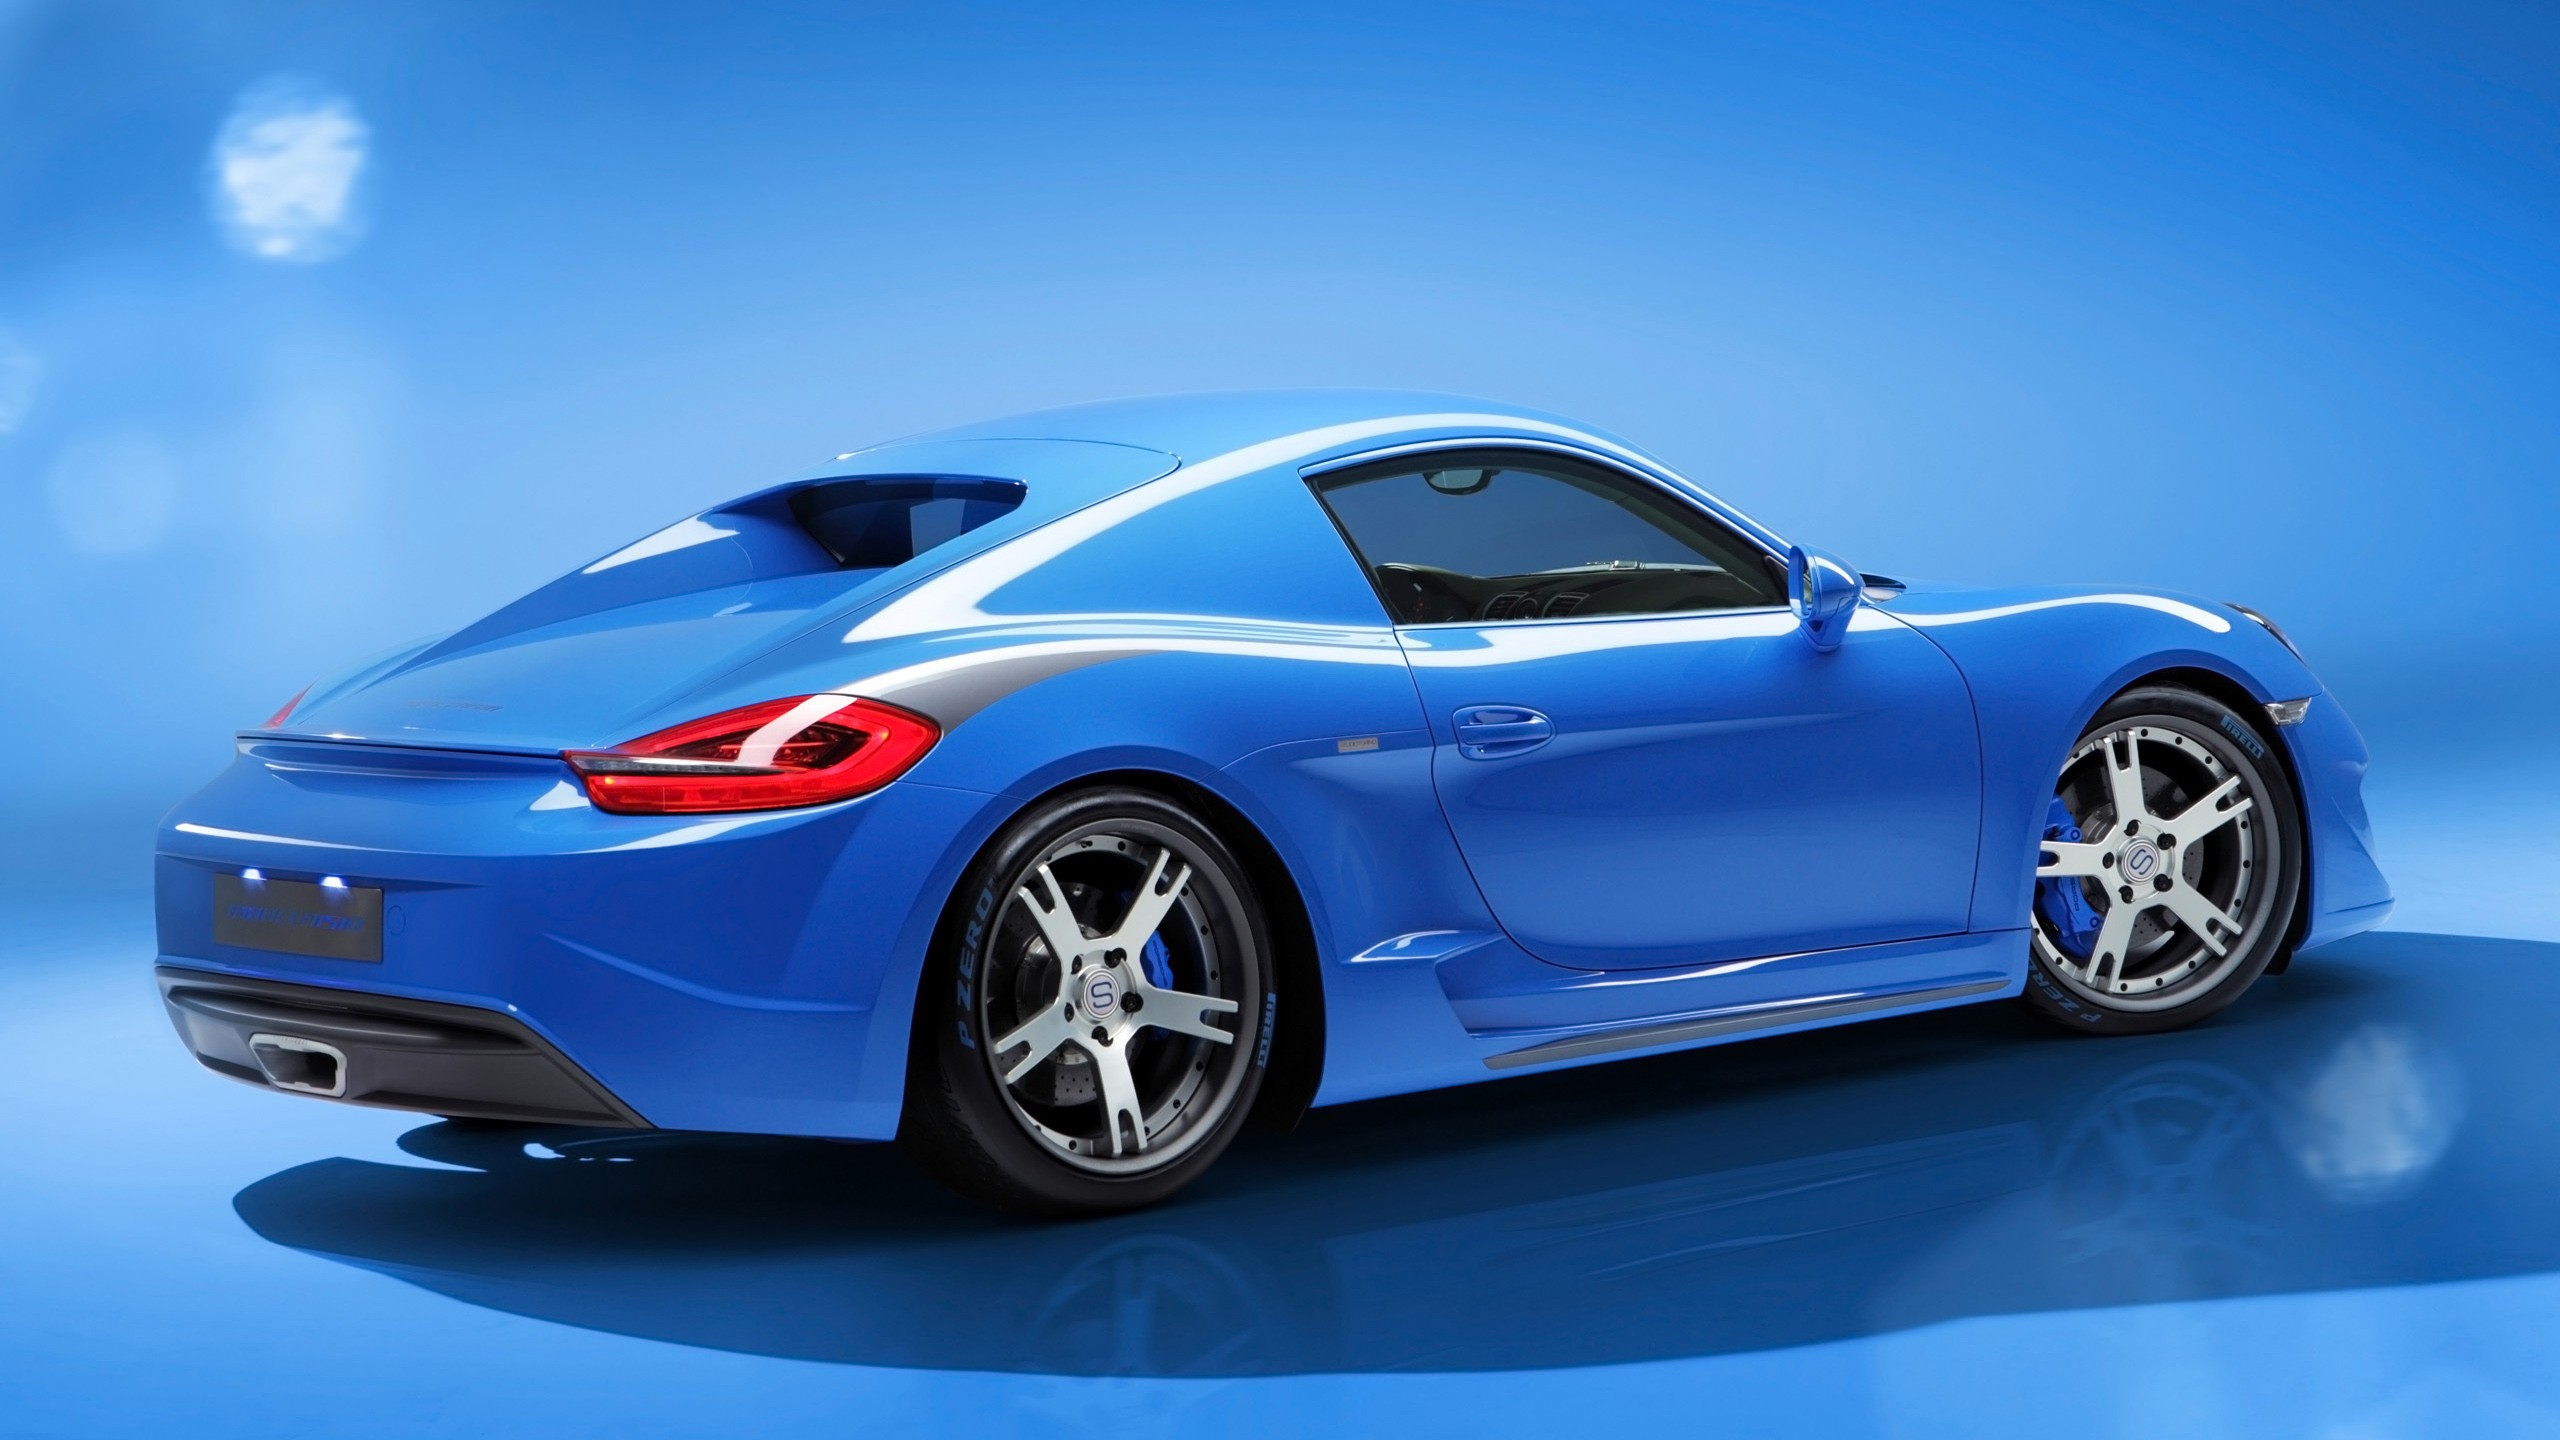 Land Rover Car Hd Wallpaper Download 2014 Studiotorino Porsche Cayman Moncenisio Blue 3